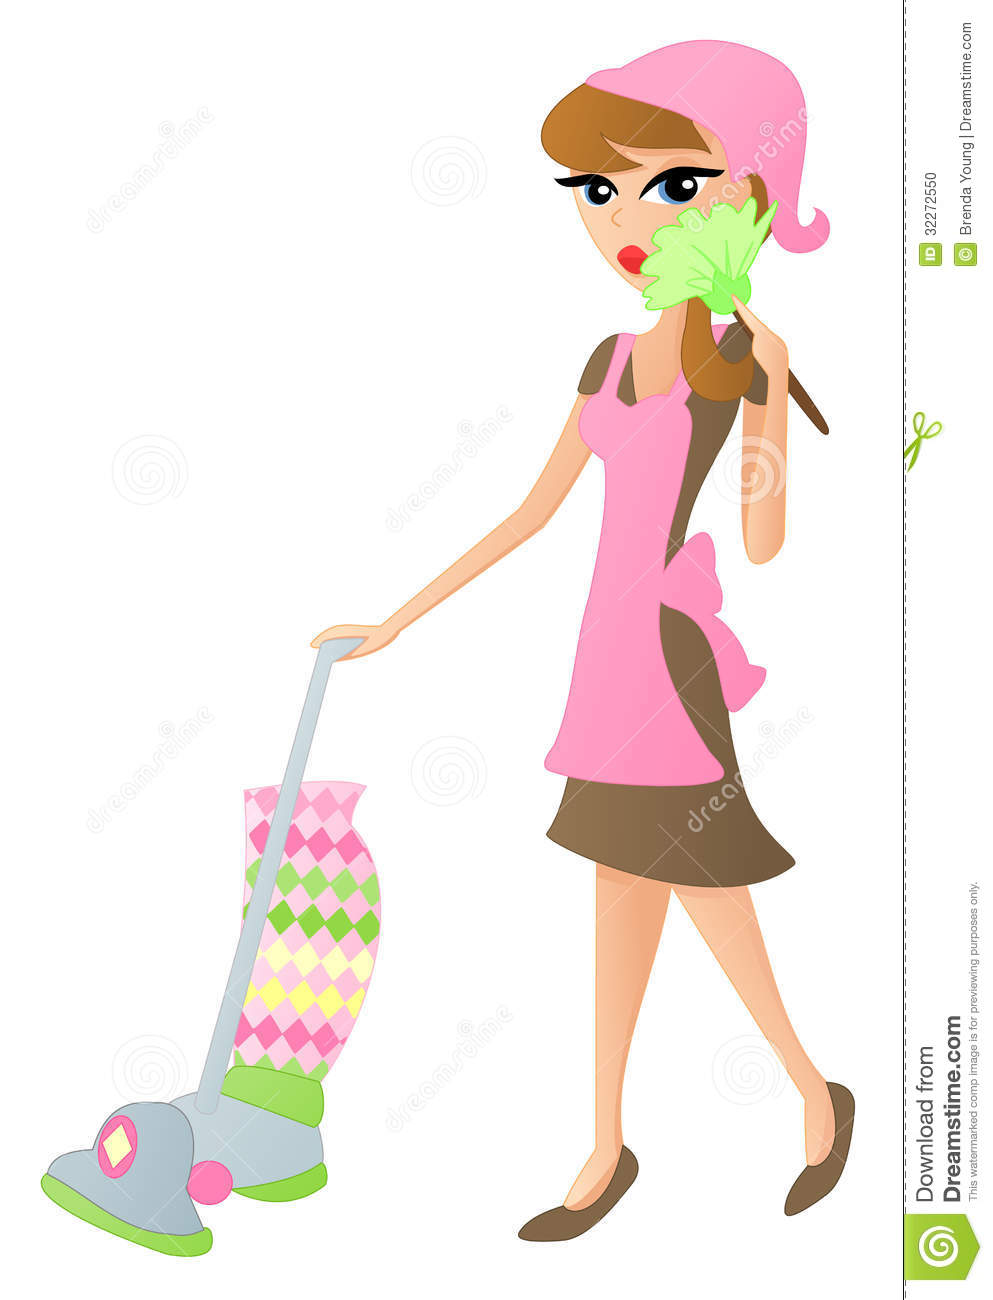 Cleaning Lady Stock Photo Image 32272550-Cleaning Lady Stock Photo Image 32272550-9